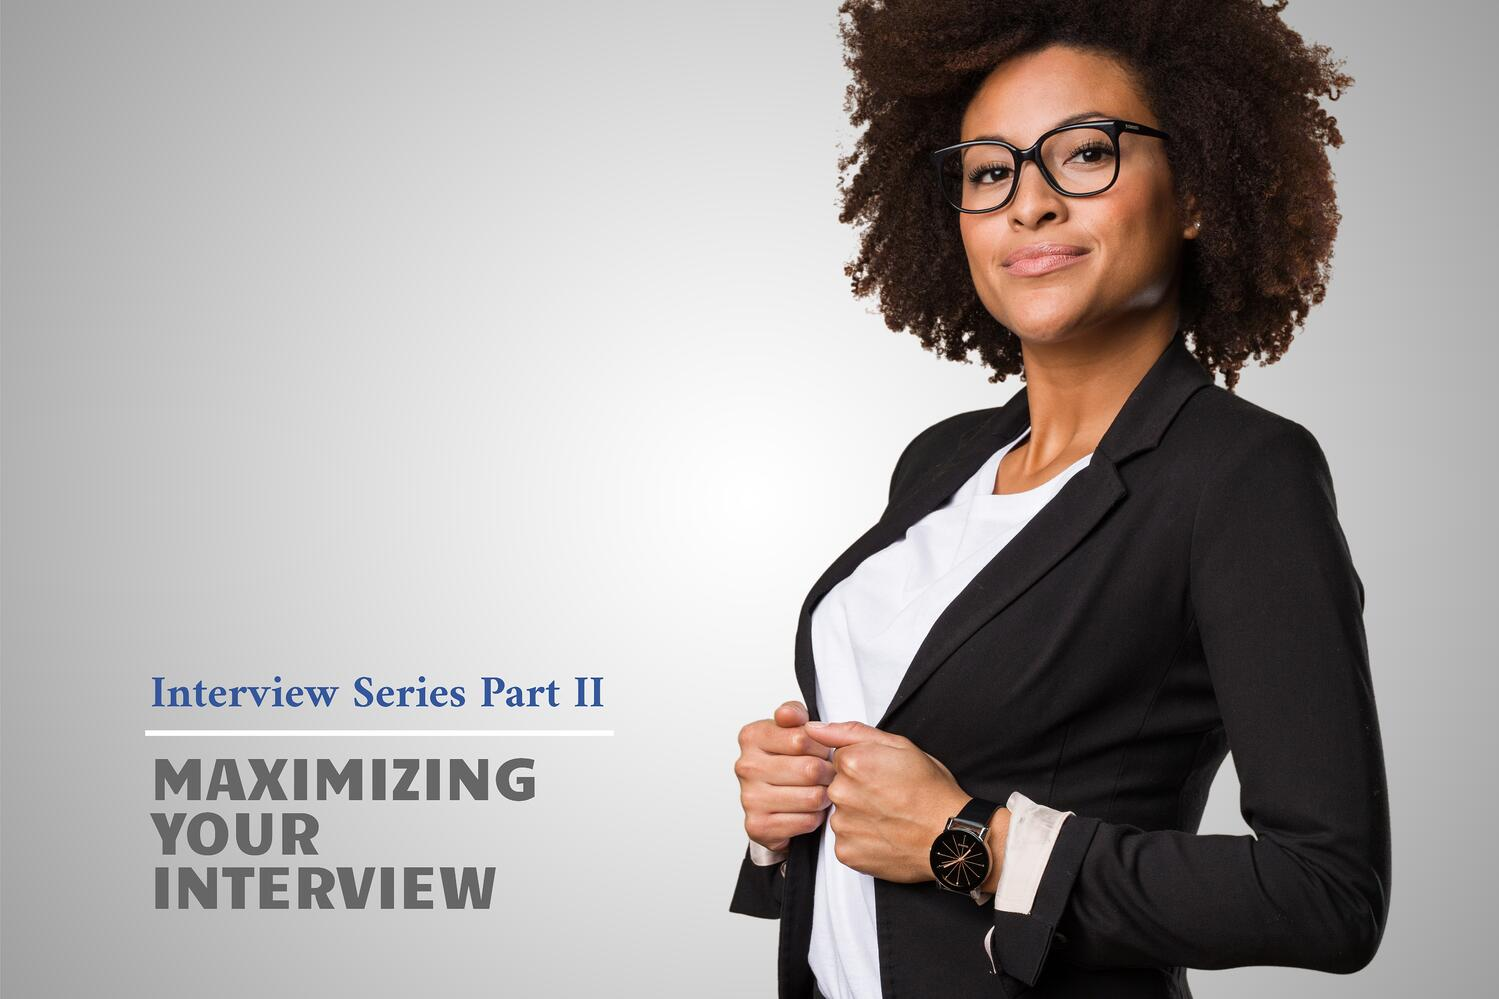 CTP Interview Tips Maximize Your Interview TrainingFolks